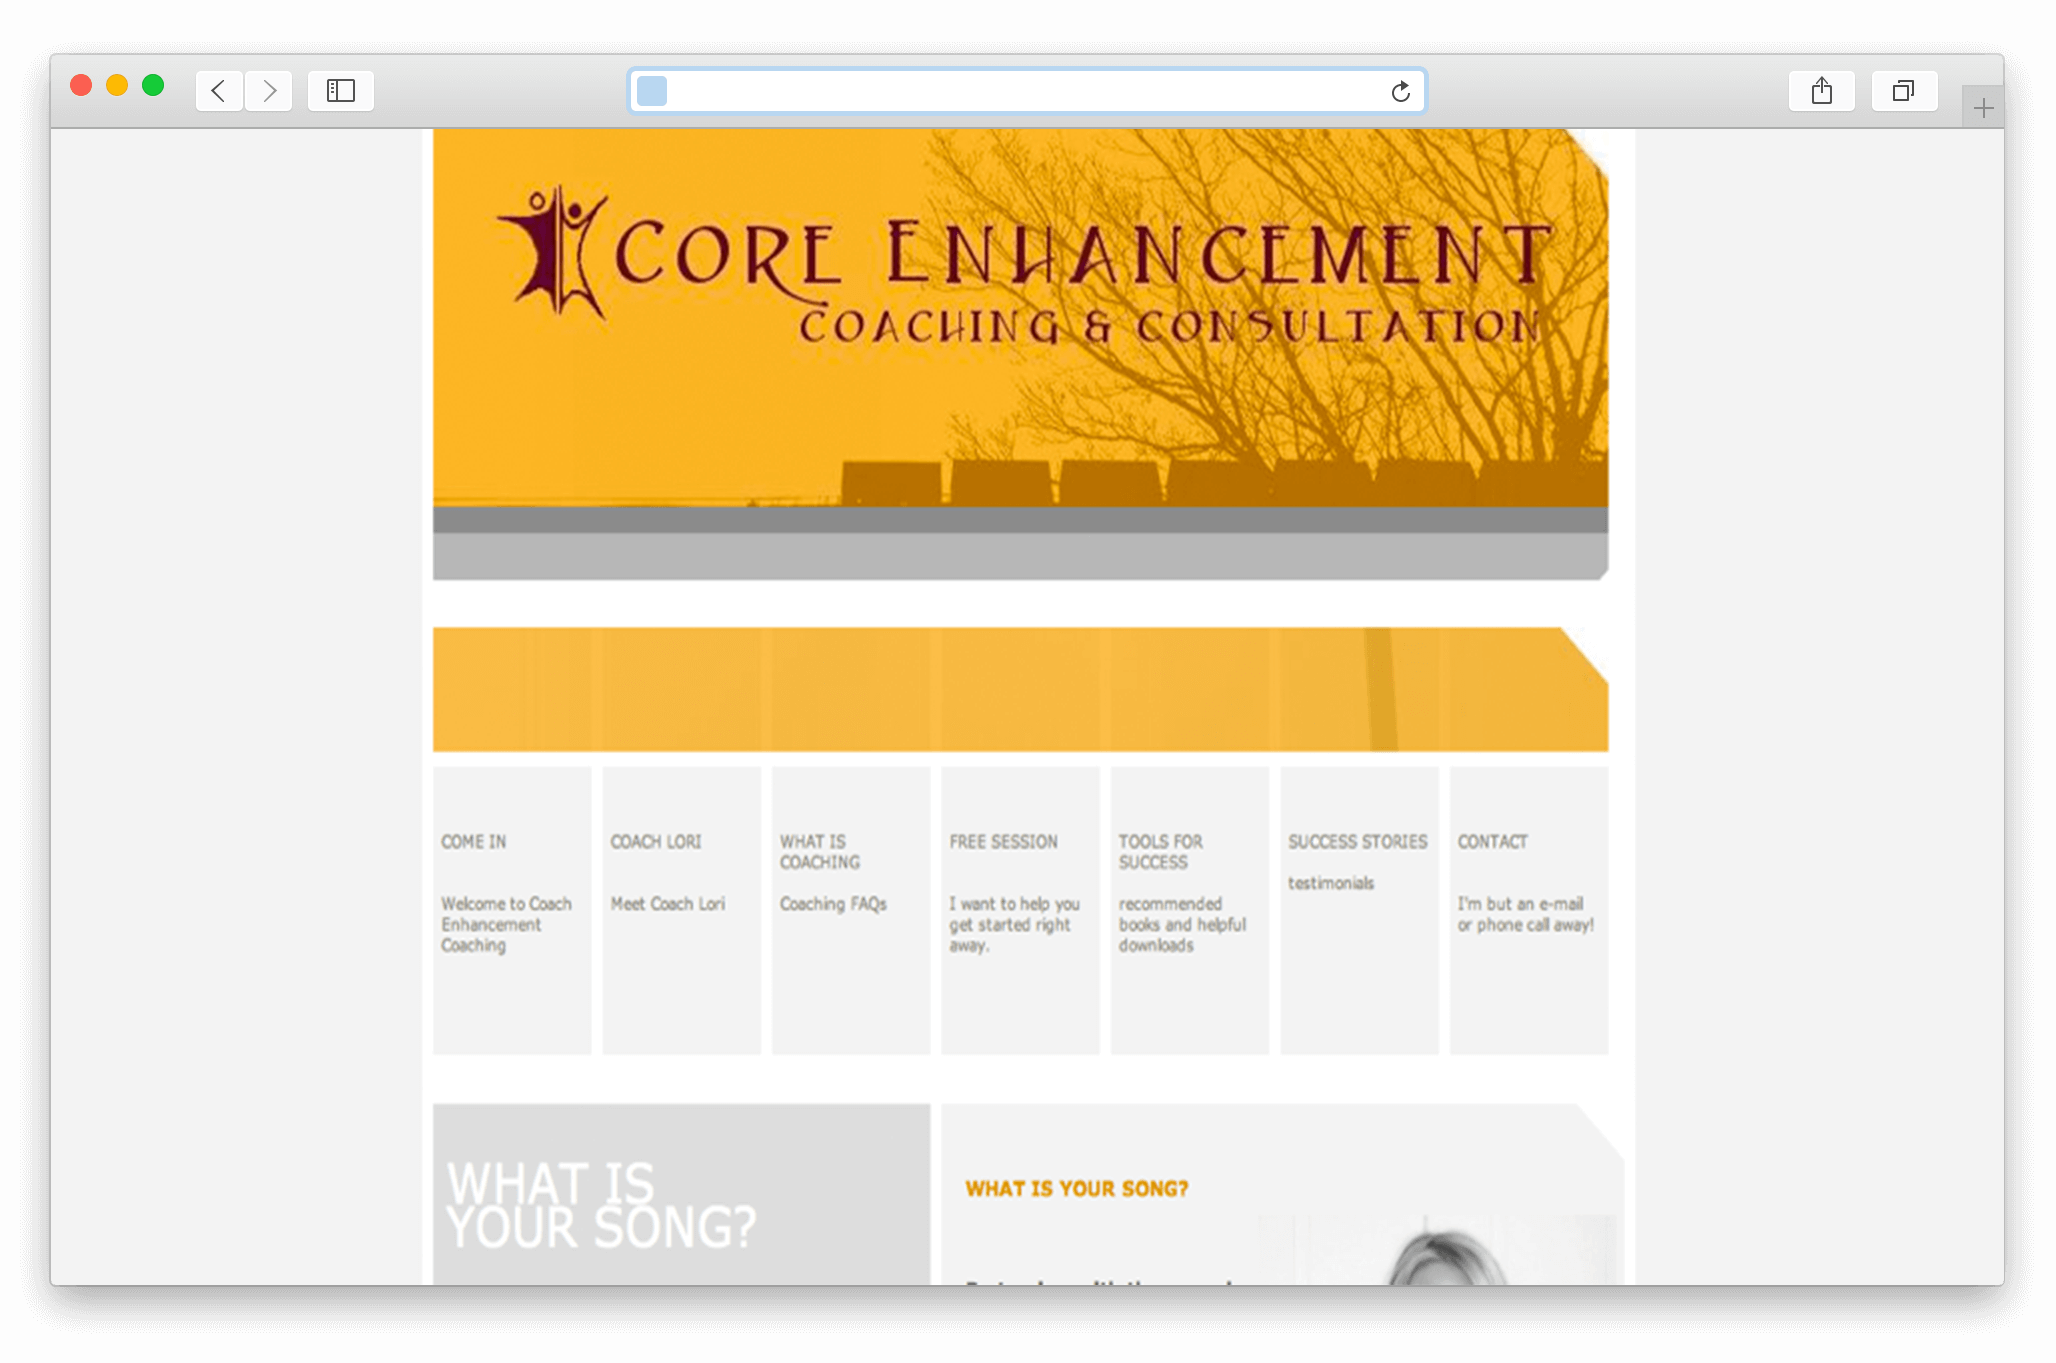 Core Enhancement Coaching